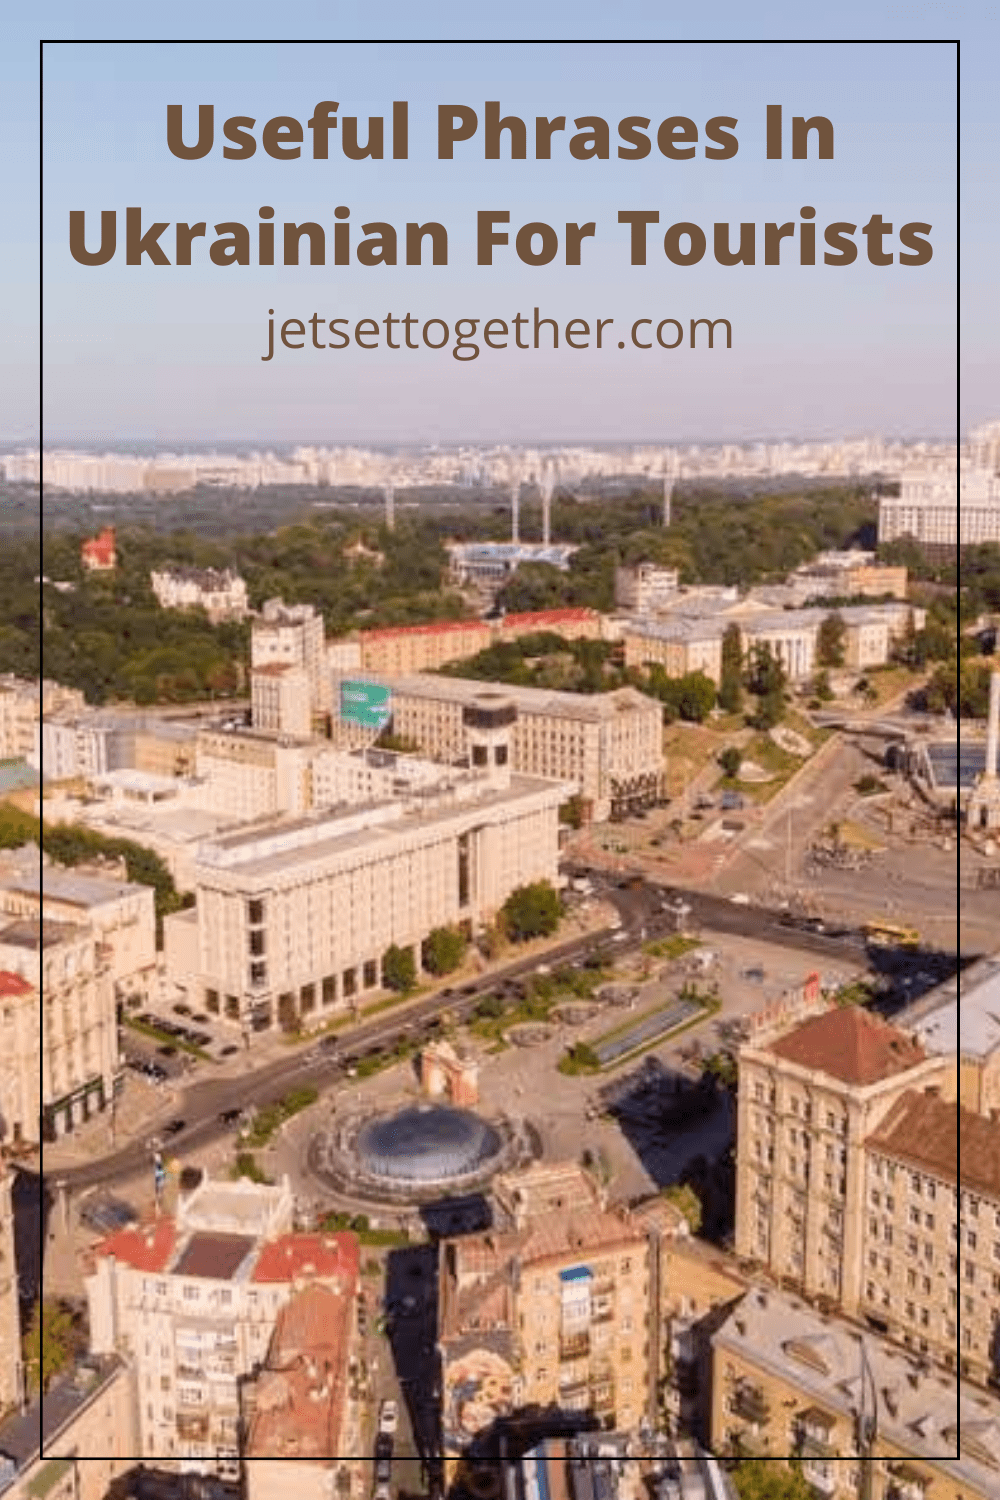 Useful Phrases In Ukrainian For Tourists